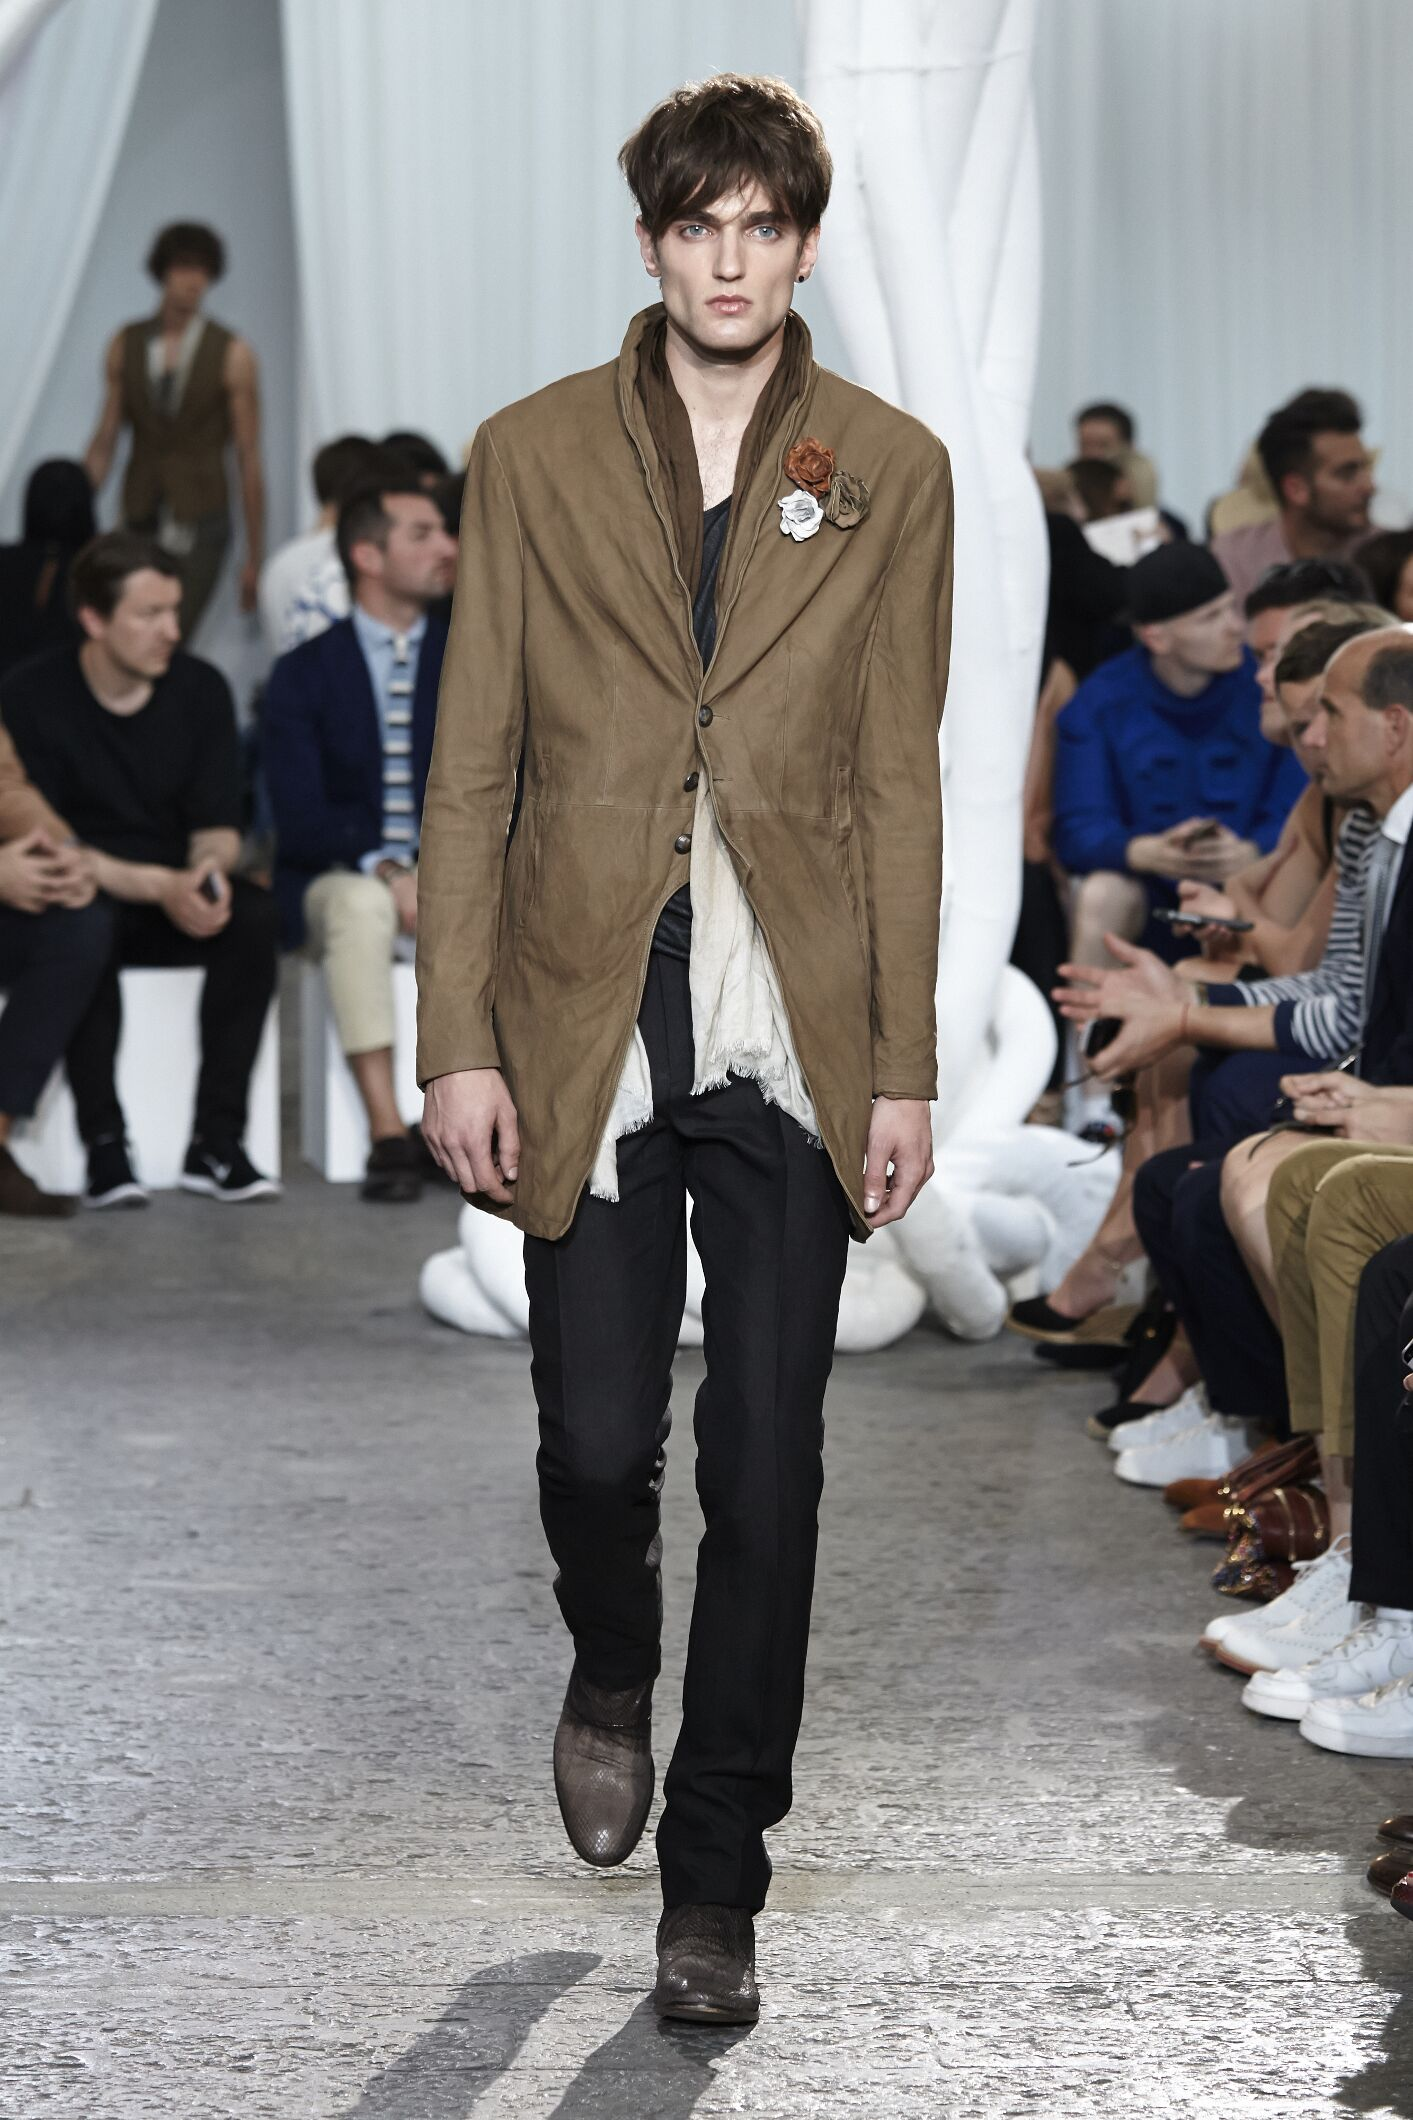 John Varvatos Milan Fashion Week Menswear